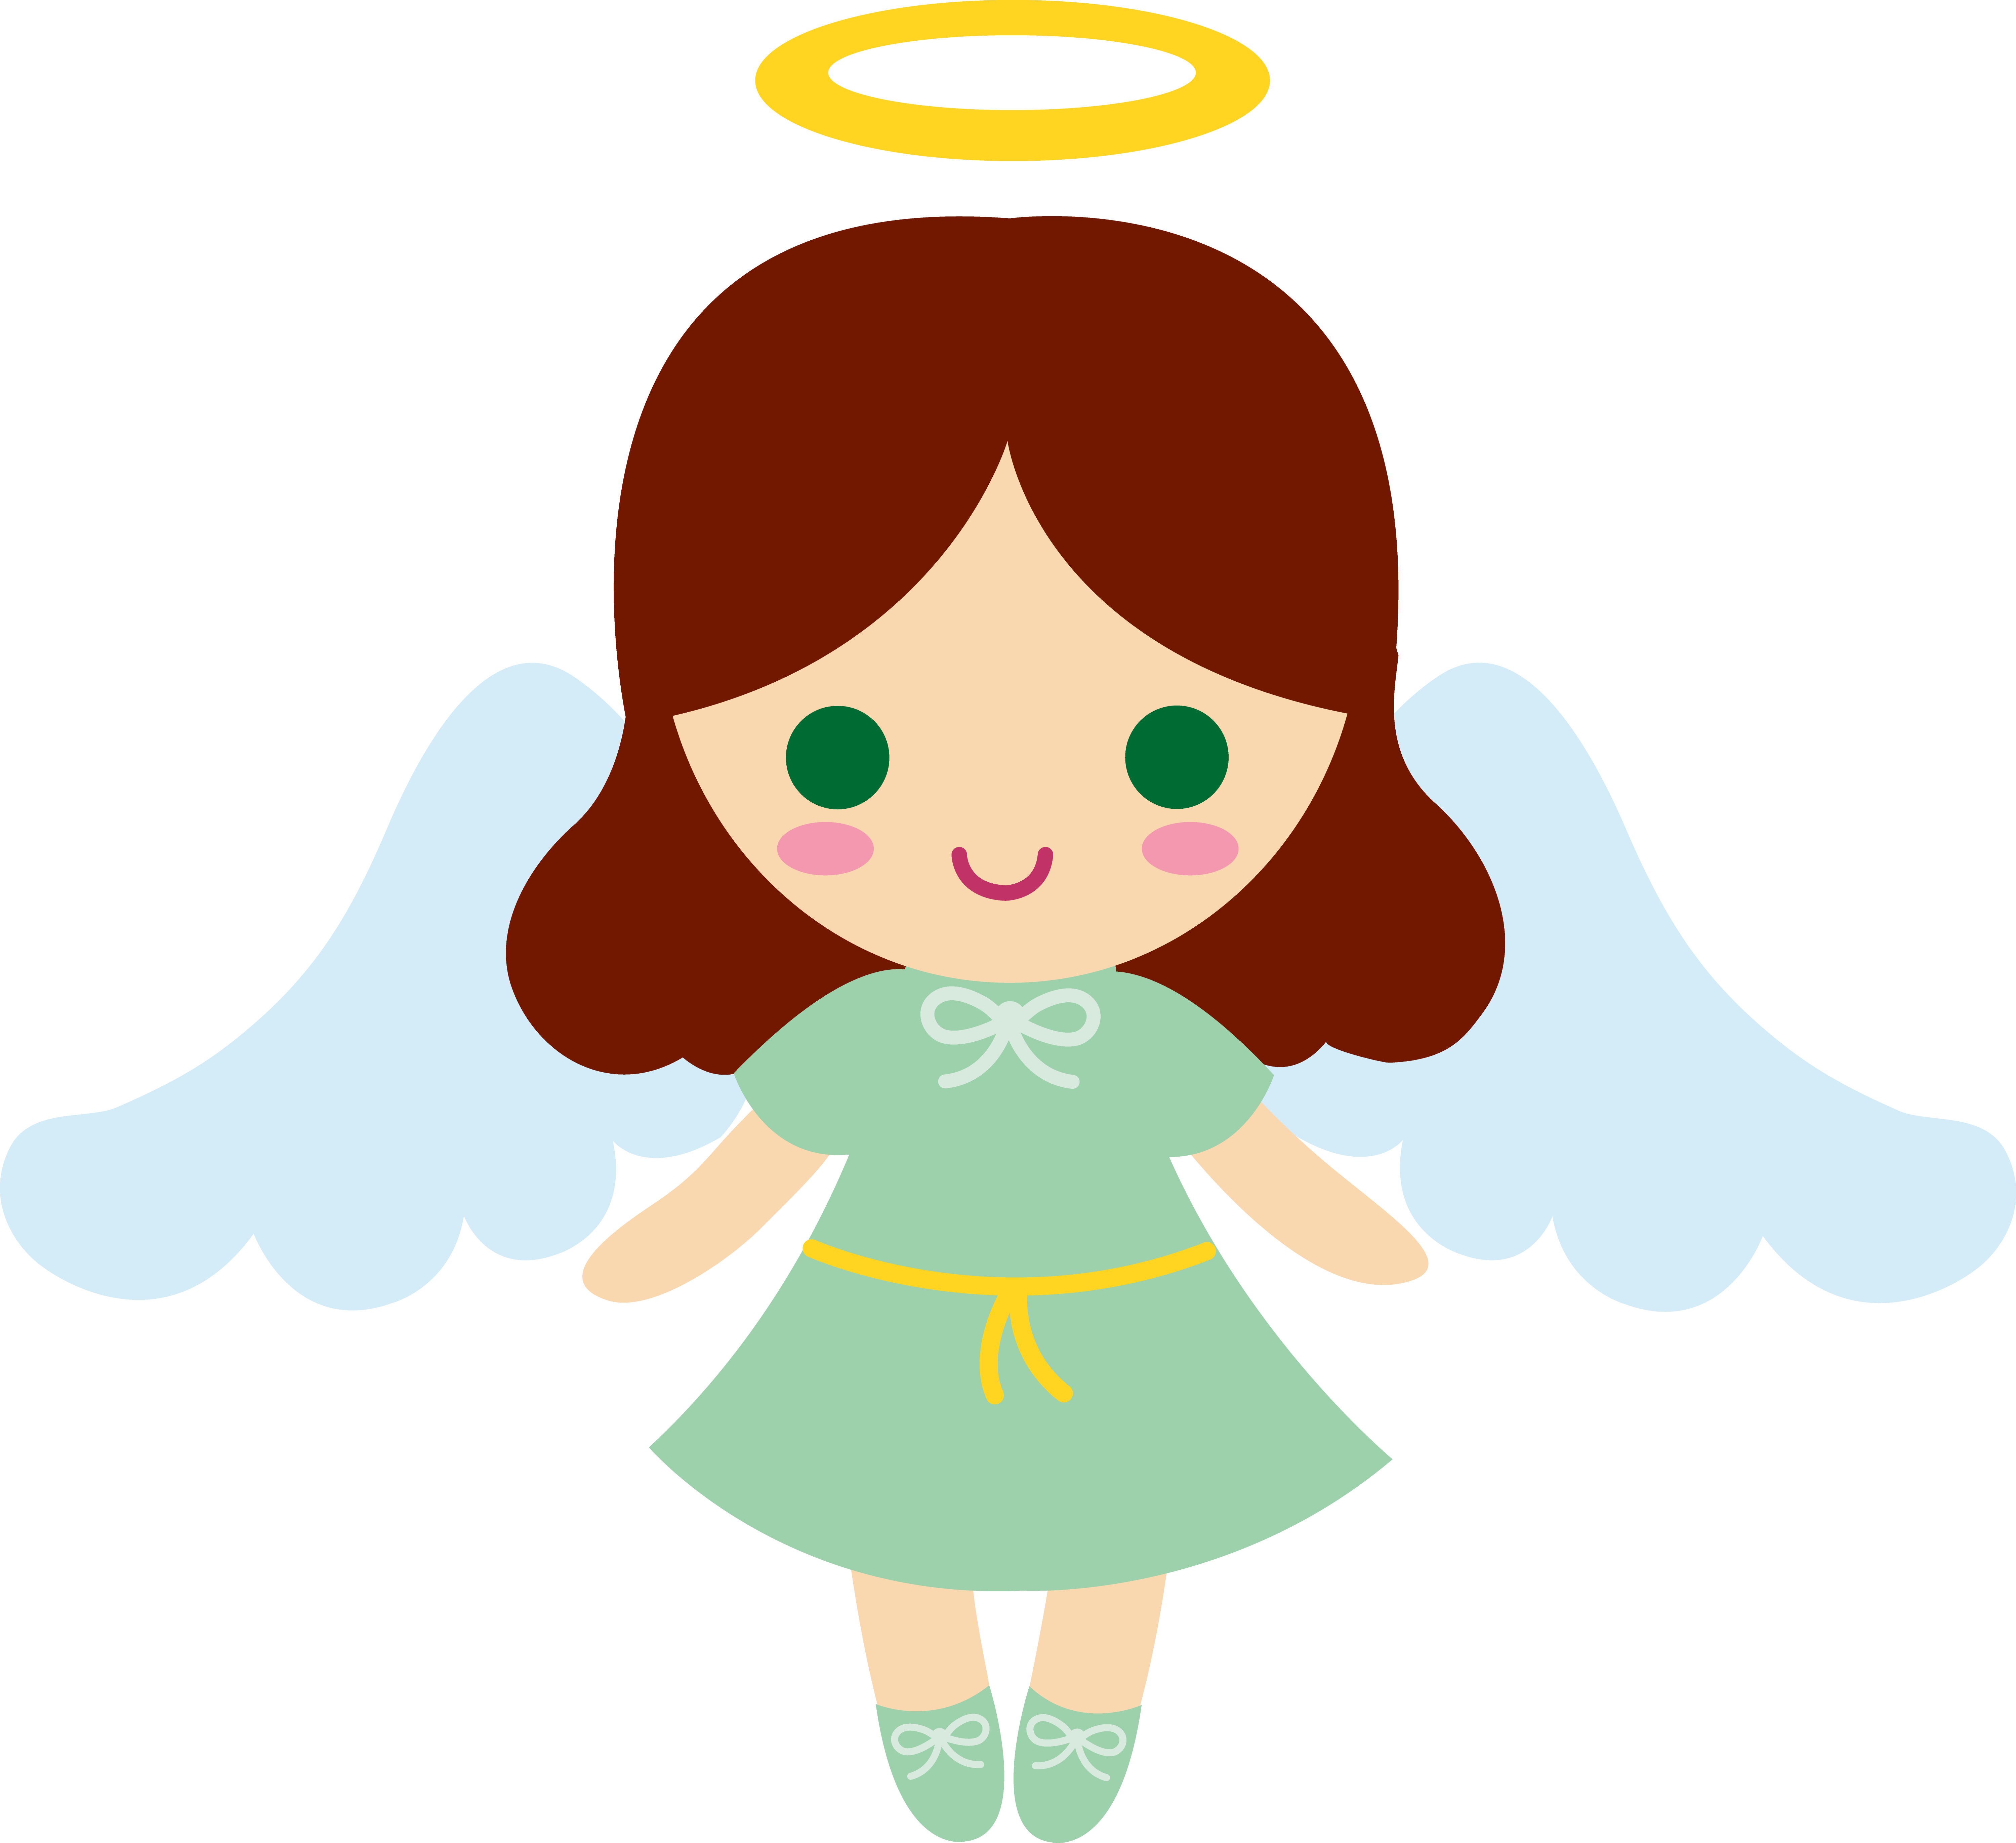 A Clipart Angel - Angel Clipart Images